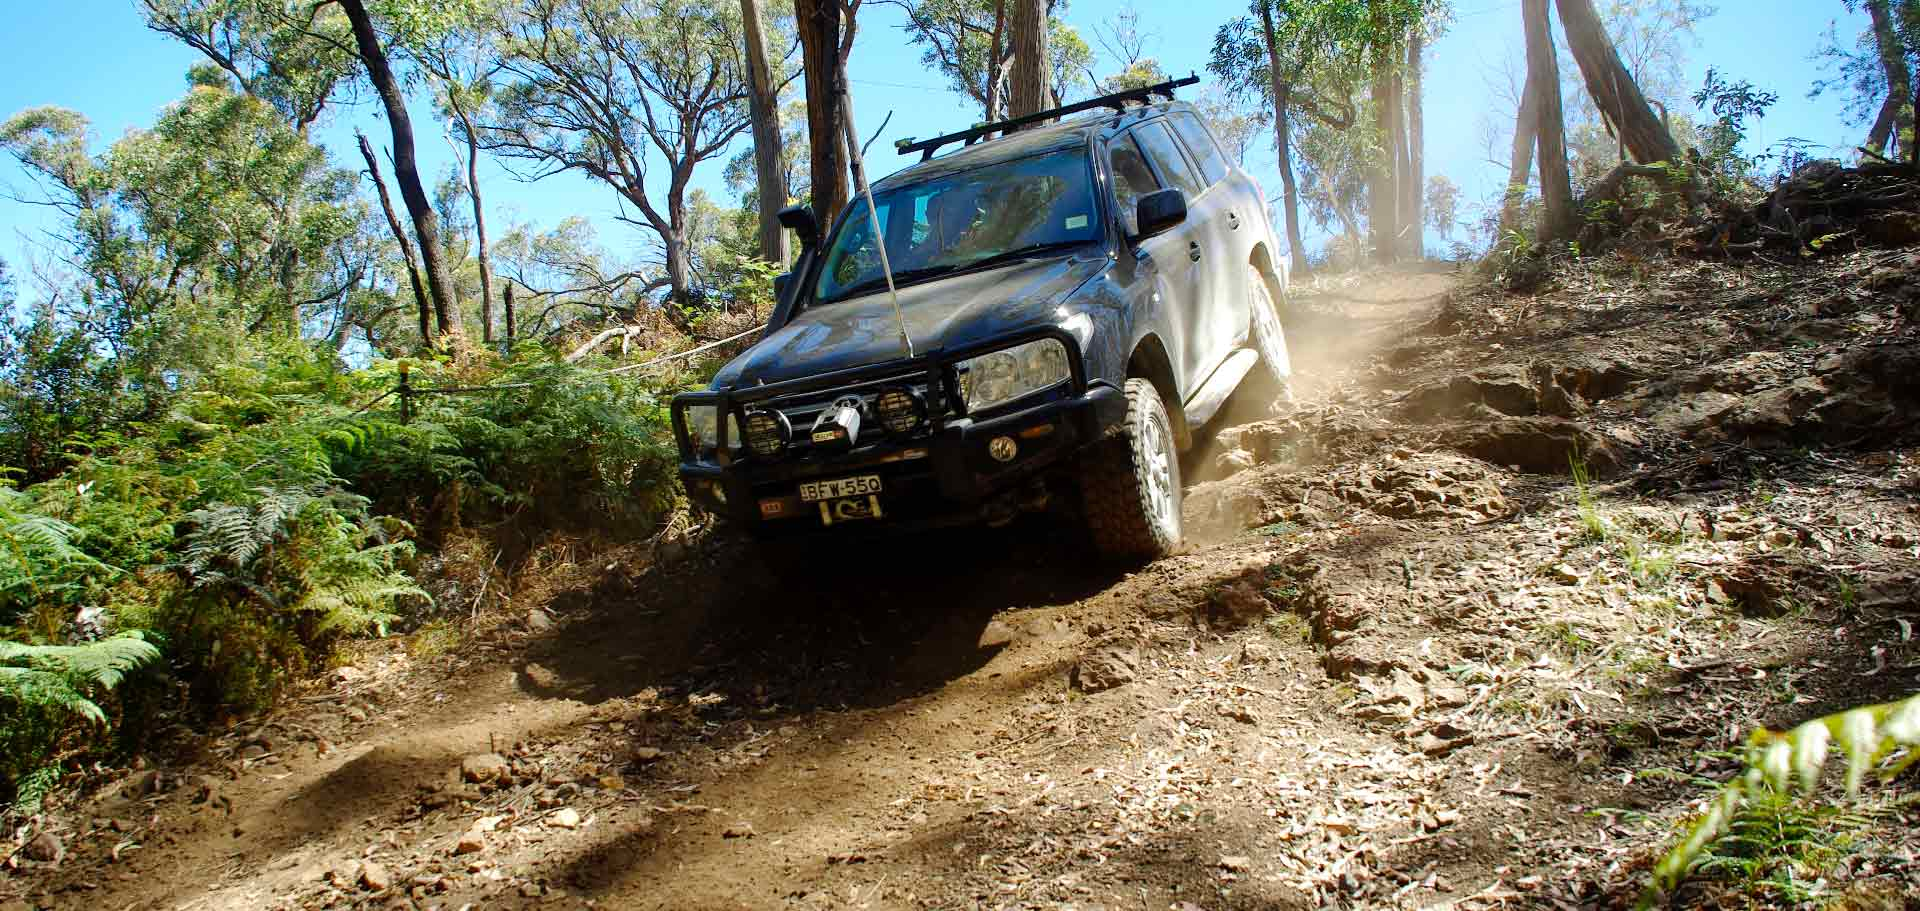 Toyota Land Cruiser Club of Australia - 4WD Club in Sydney NSW